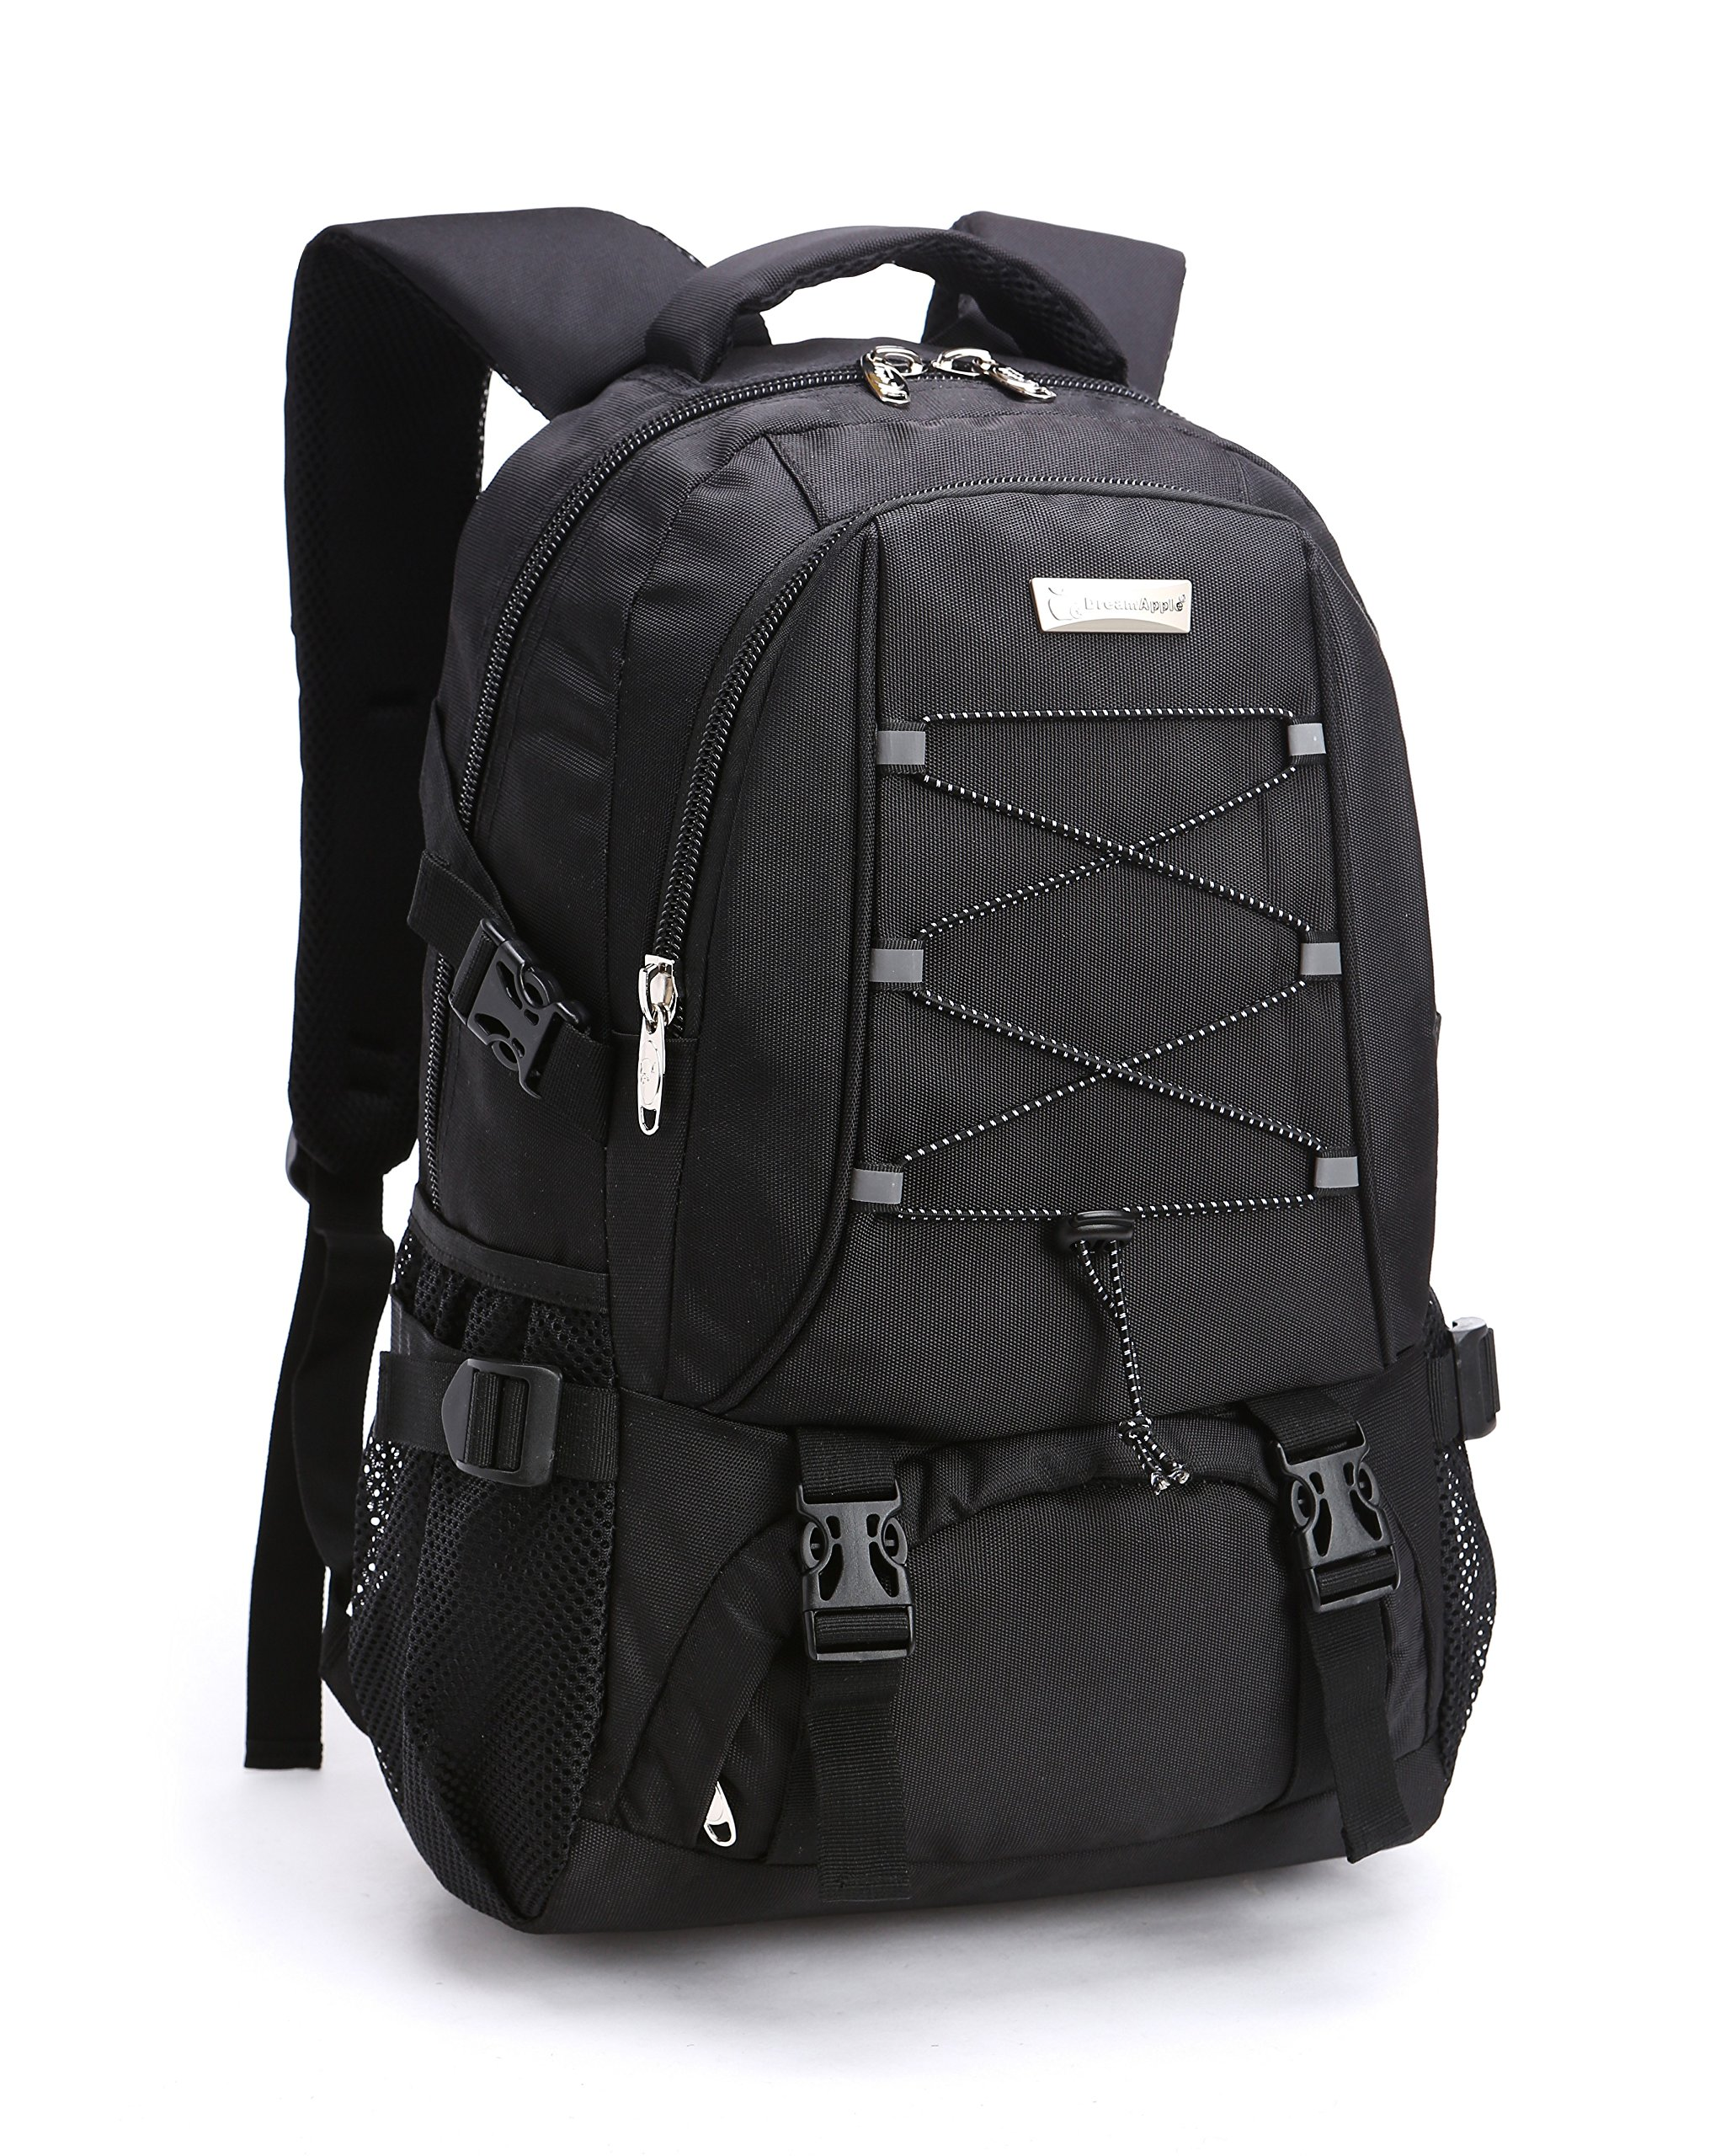 KOPD Outdoor Laptop Backpack Office Backpack Travel Computer Bag School Backpack fits 15.6 inch Laptop and Notebook to Working,School,Camping and Travel(Black)